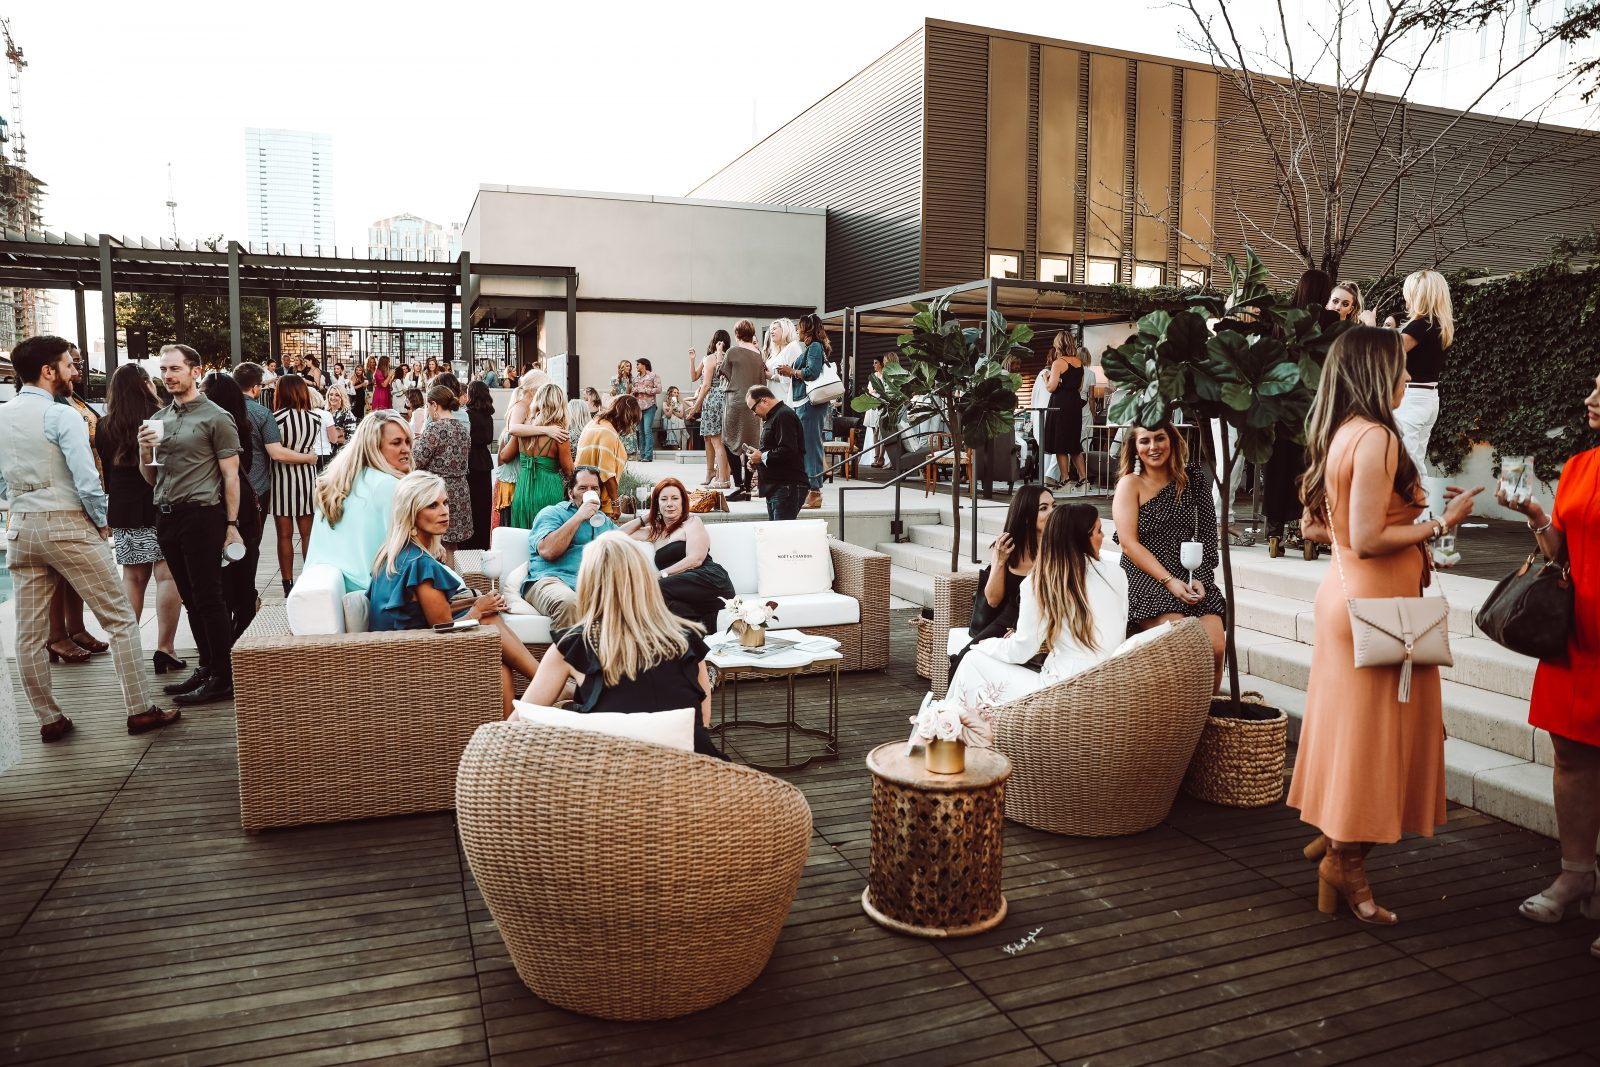 Nashville Edit Women's event on the rooftop of the Omni Hotel in Nashville, TN